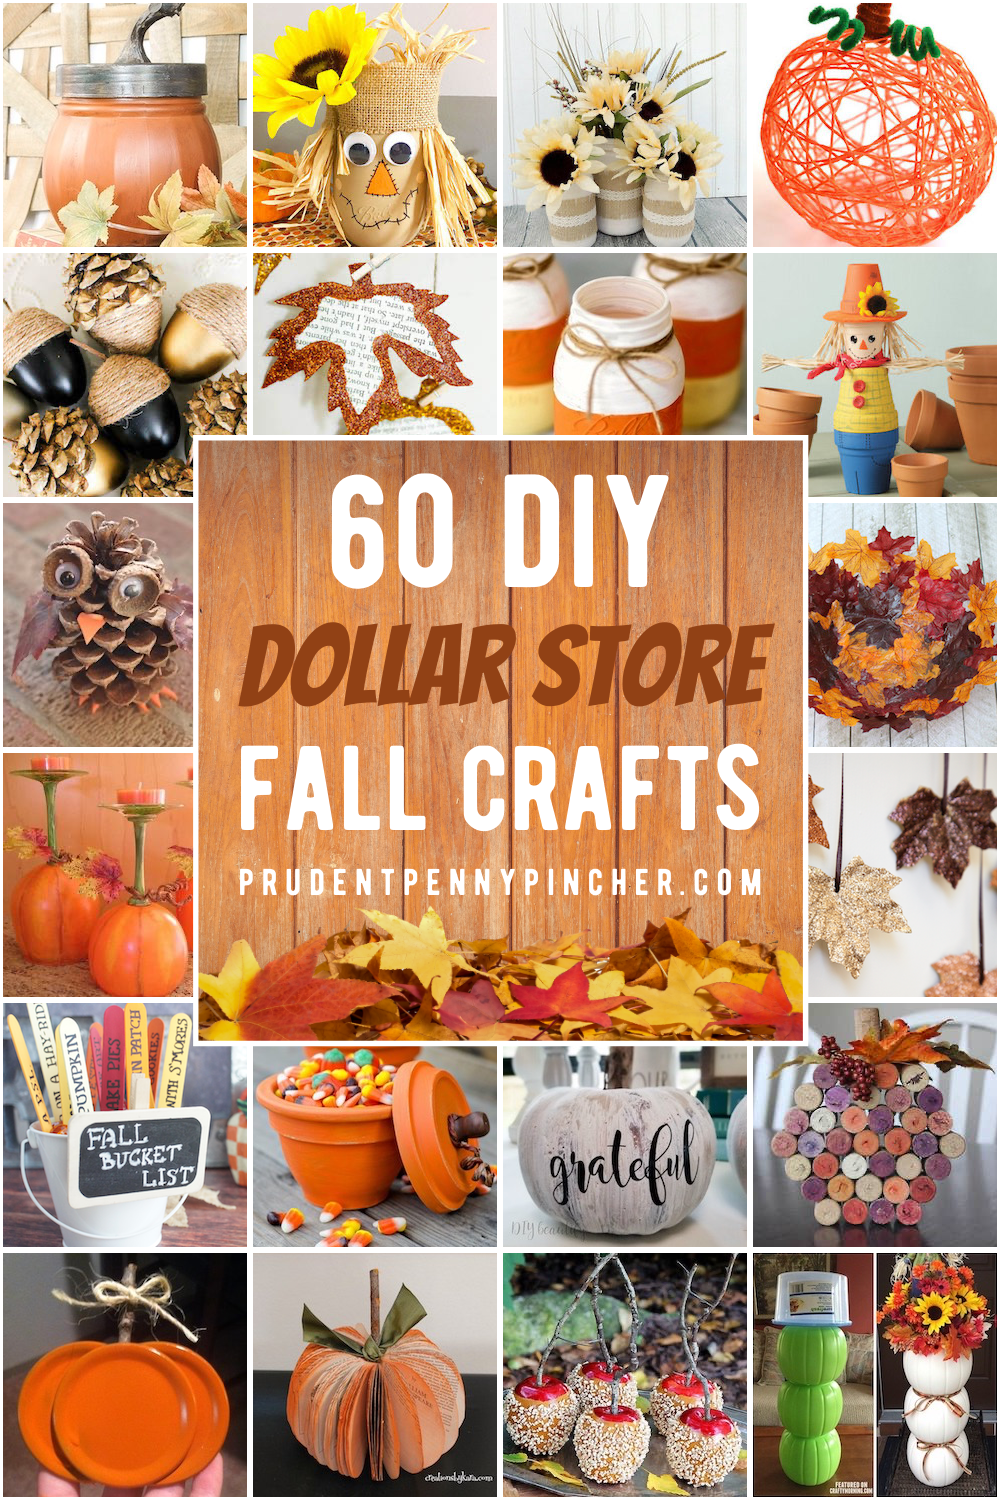 60 Dollar Store Fall Crafts in 2020 Fall crafts diy